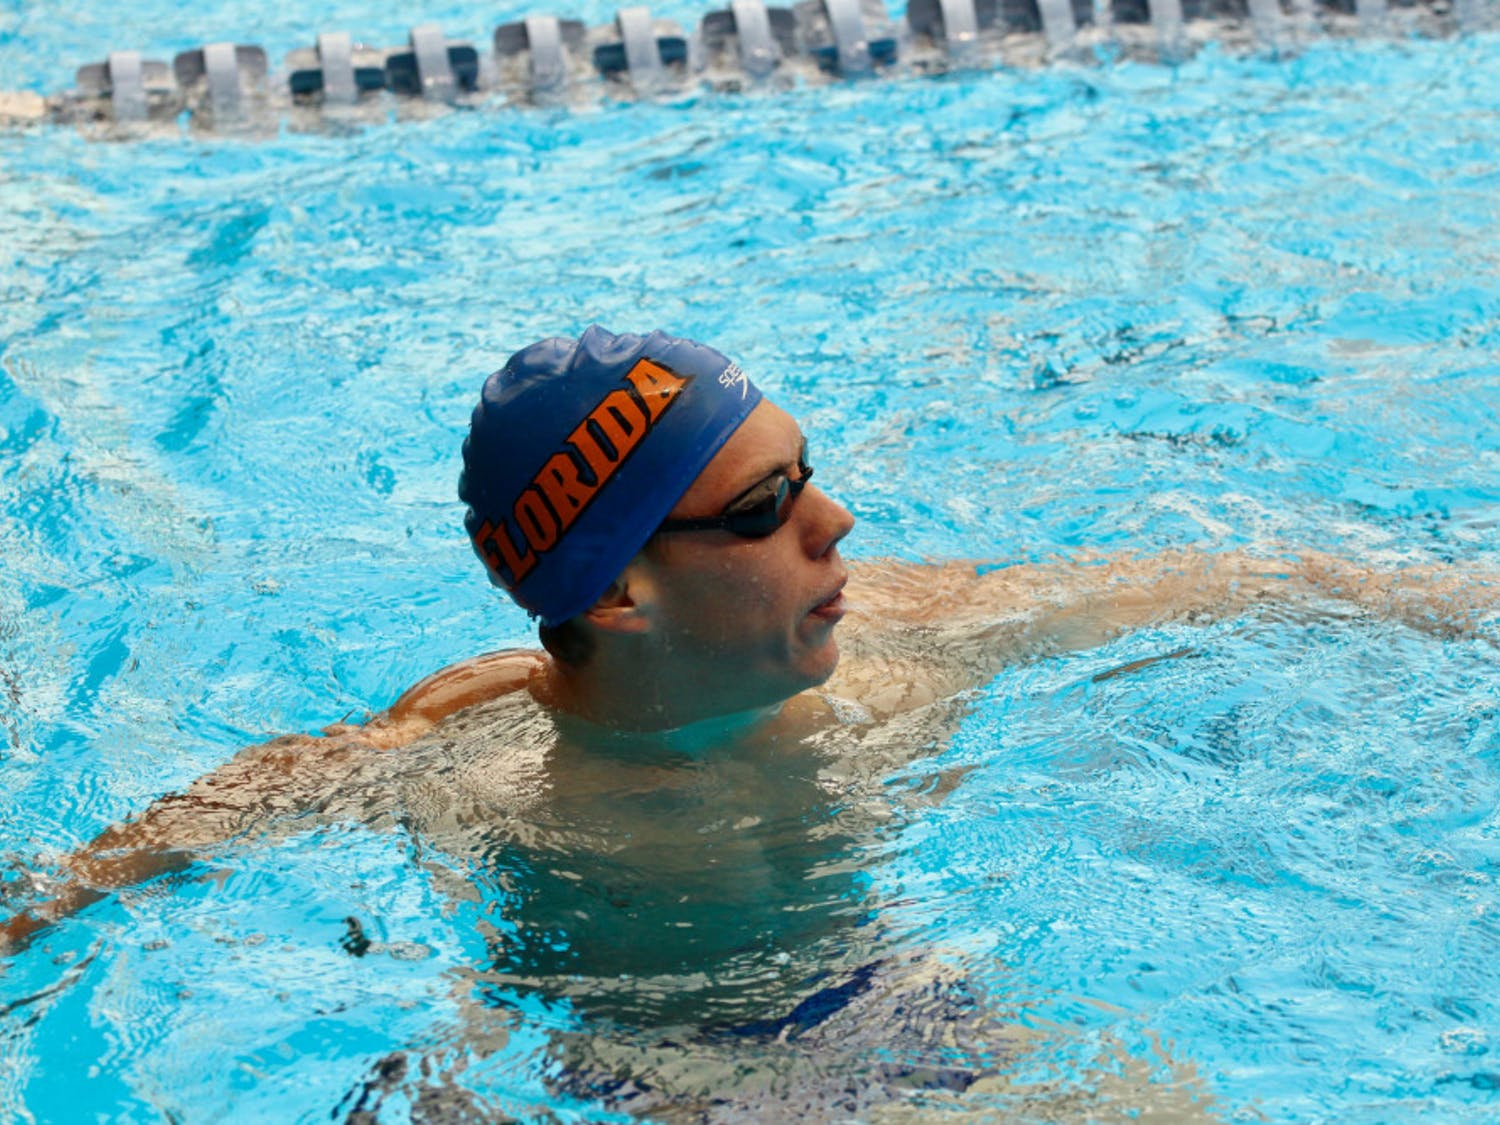 UF swimmer Jan Switkowski won three individual competitions to help the Gators men's swimming and diving team beat Georgia on Friday for the first time since 2013.